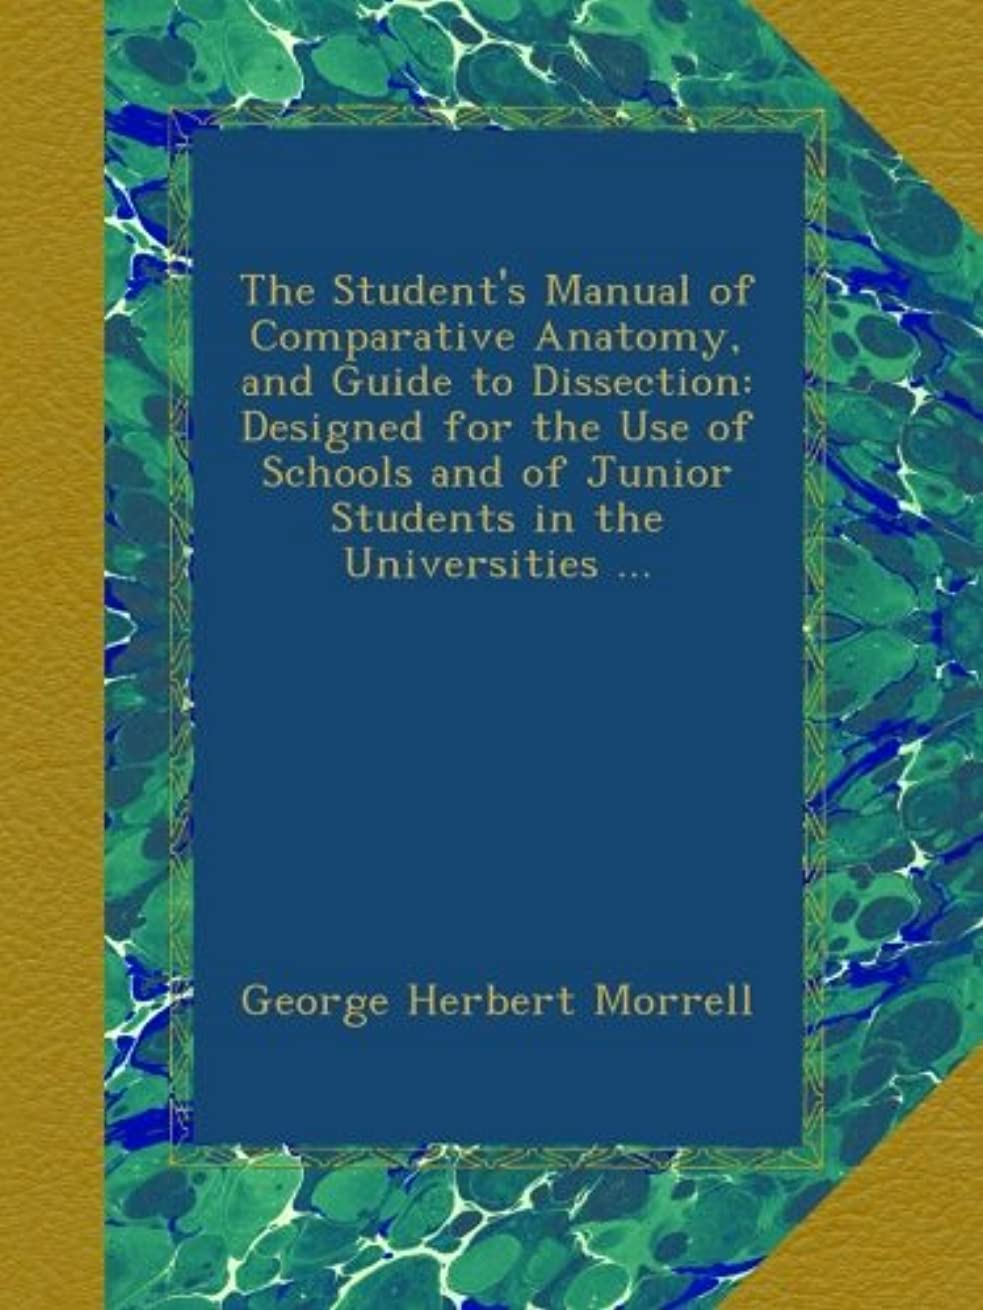 集計ねばねば無限The Student's Manual of Comparative Anatomy, and Guide to Dissection: Designed for the Use of Schools and of Junior Students in the Universities ...